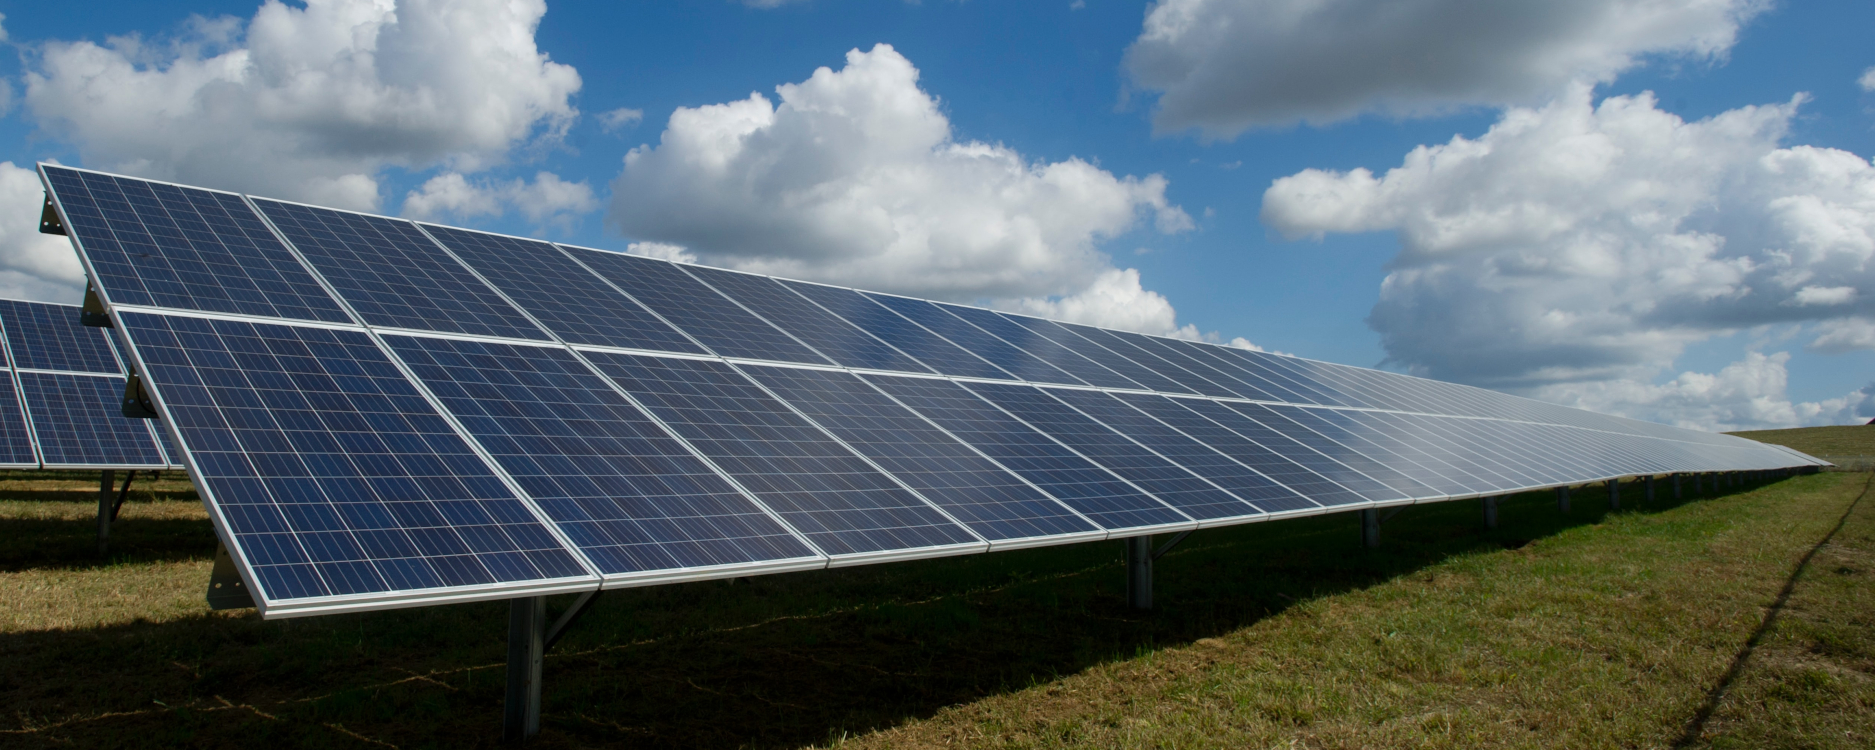 More power from solar panels – by using porous materials